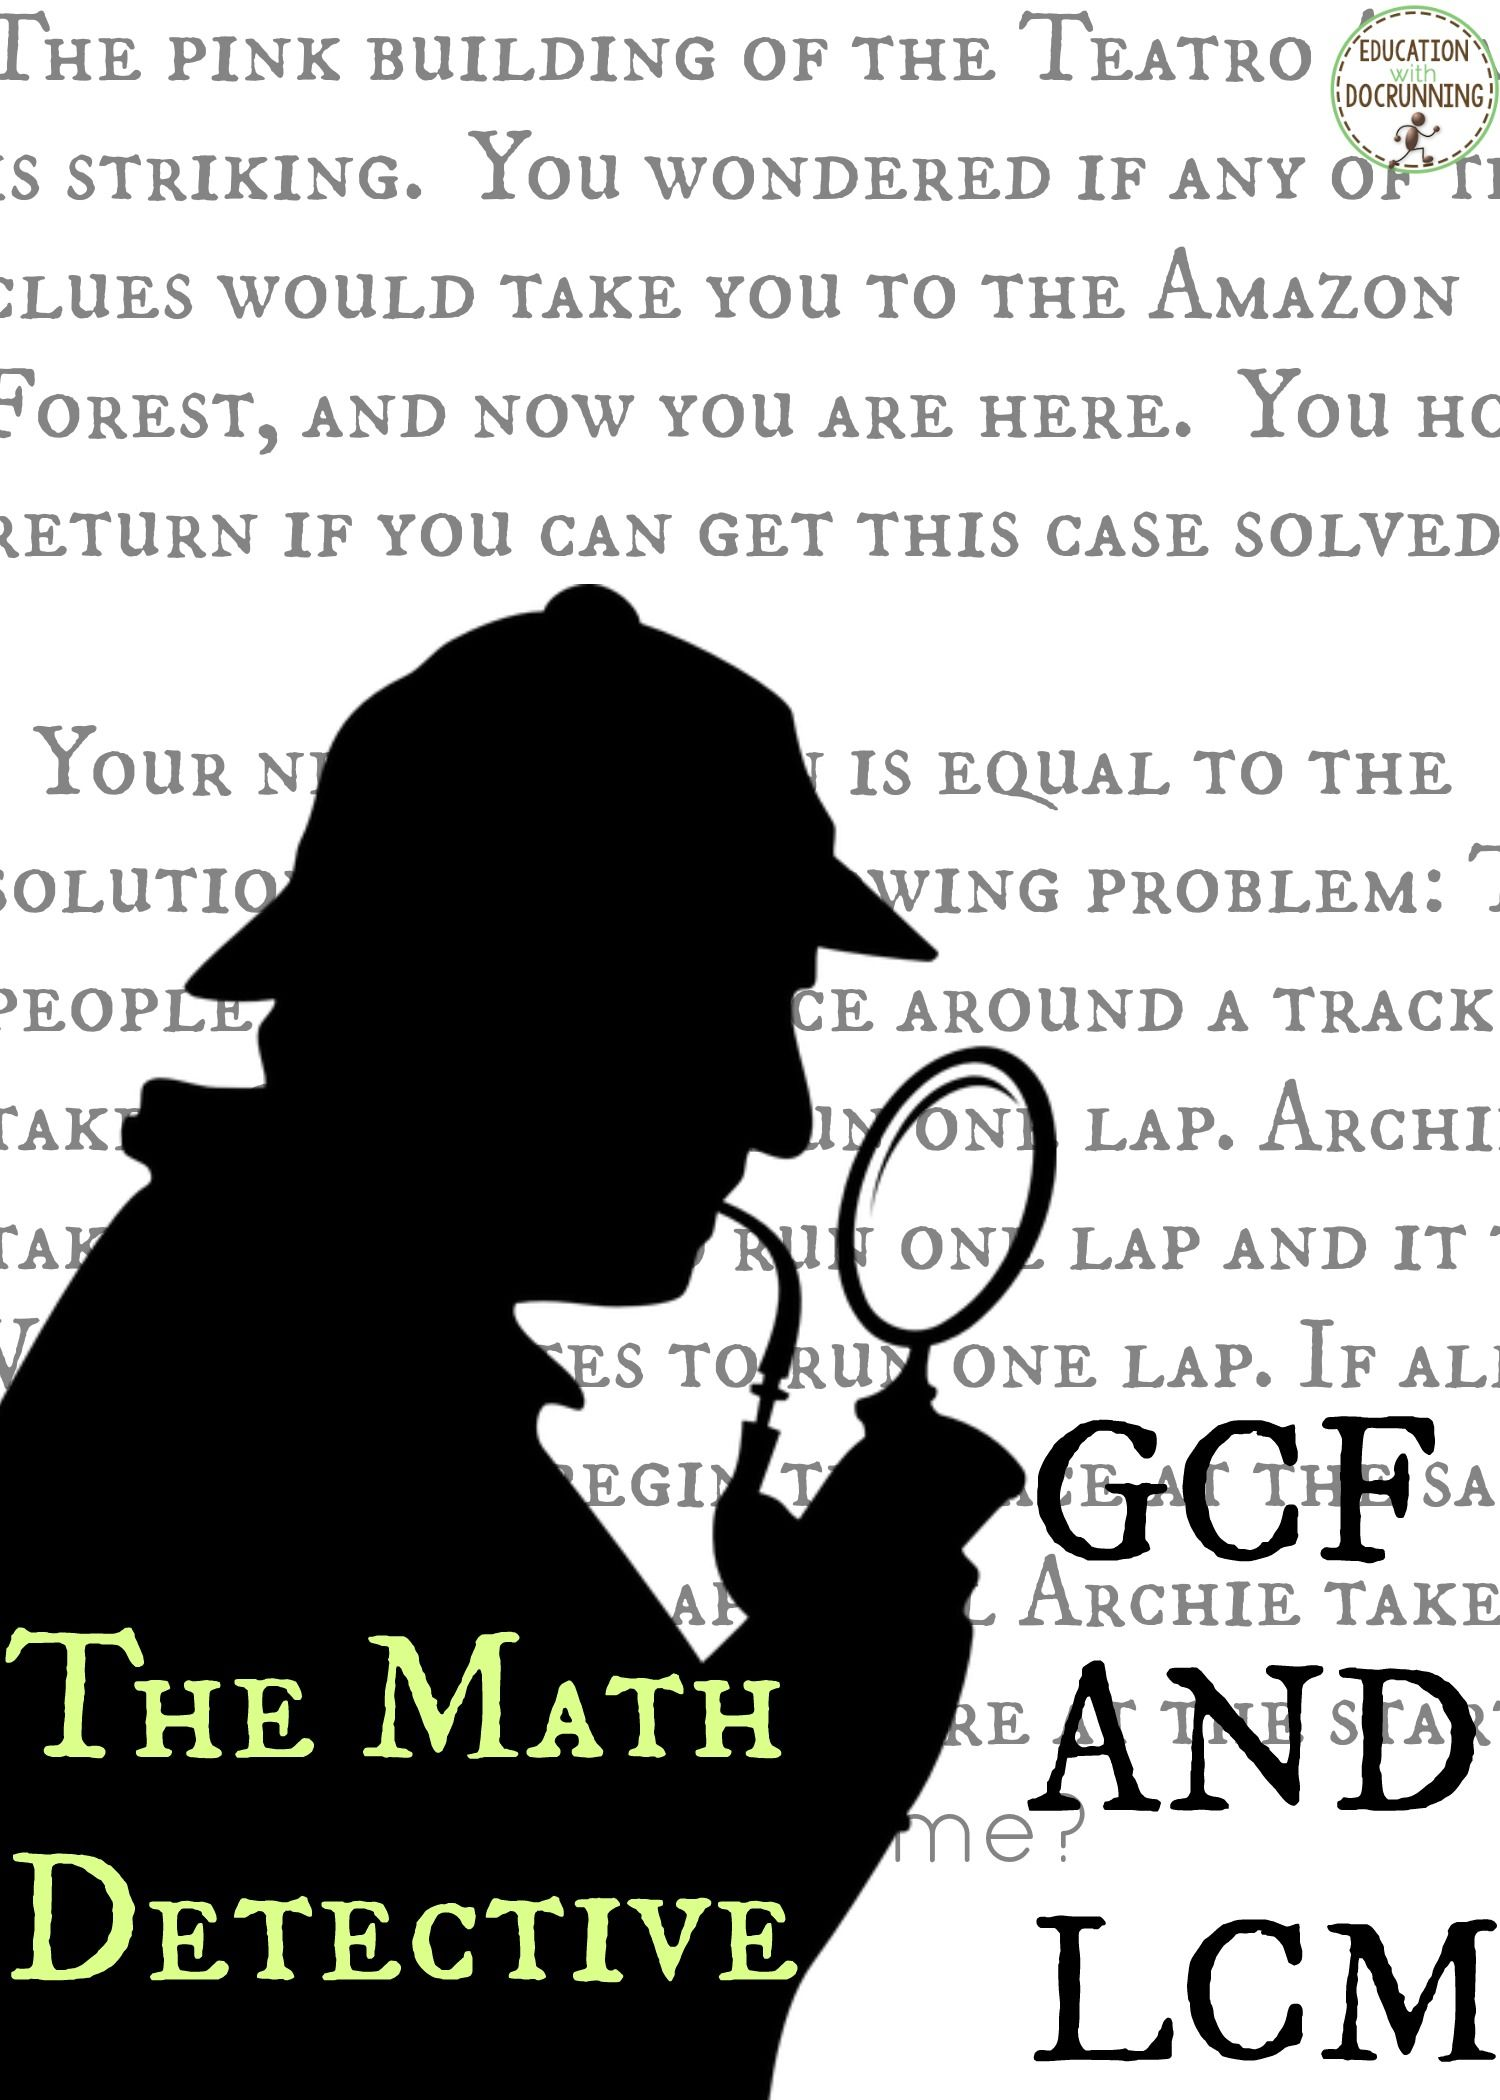 Greatest Common Factor And Least Common Multiple Math Detective Activity